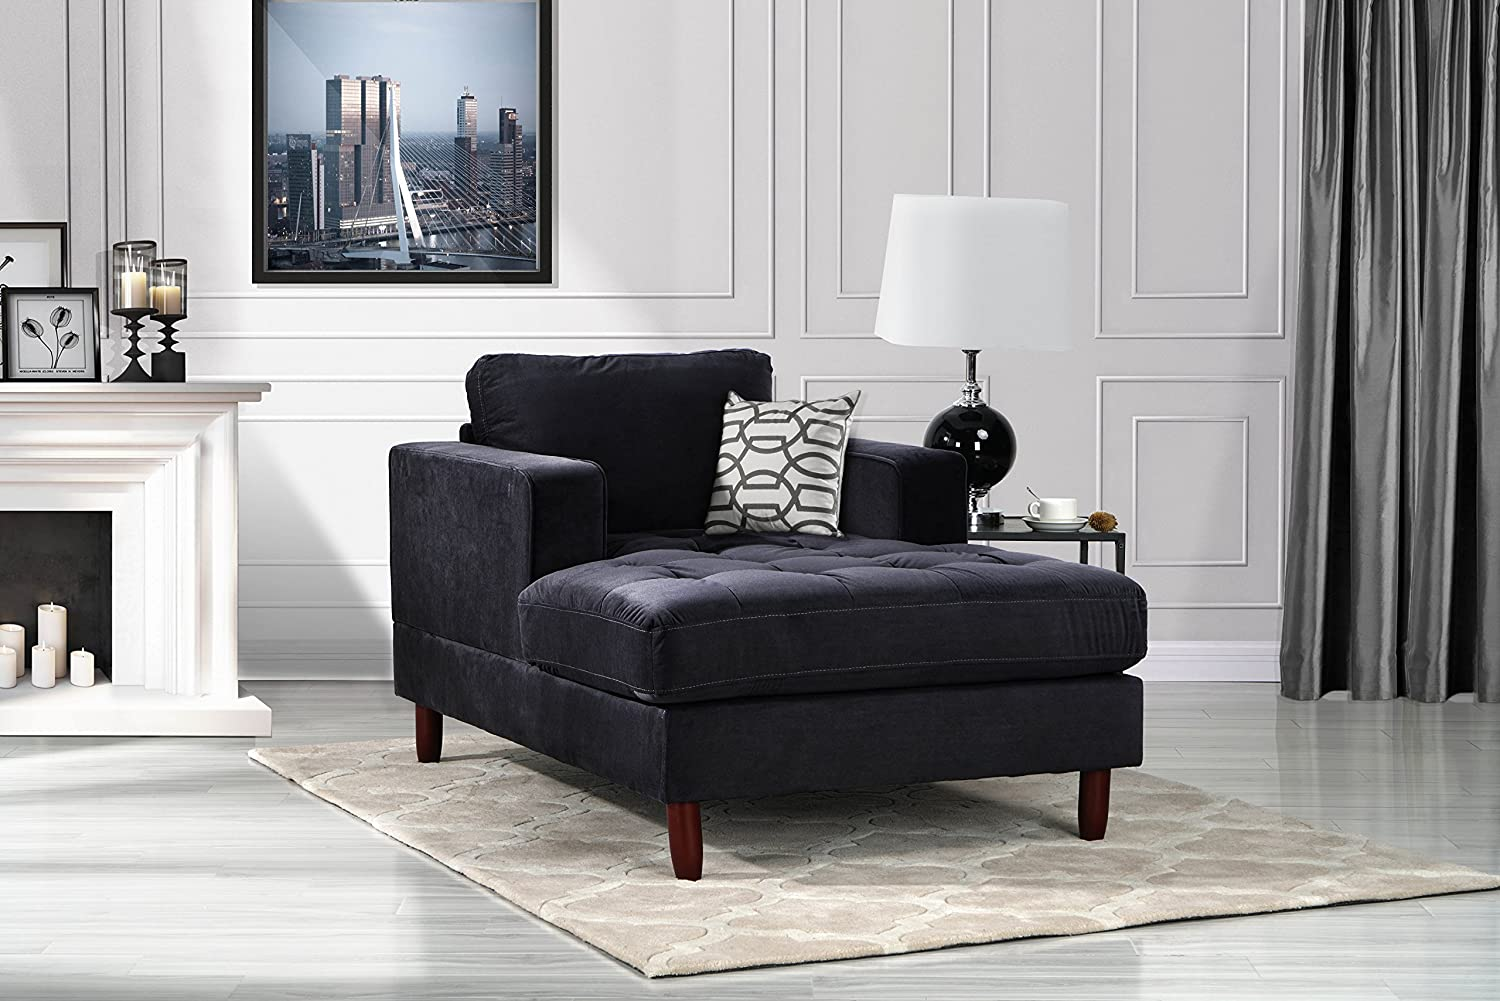 DIVANO ROMA FURNITURE Mid Century Modern Velvet Fabric Living Room Chaise  Lounge (Black)